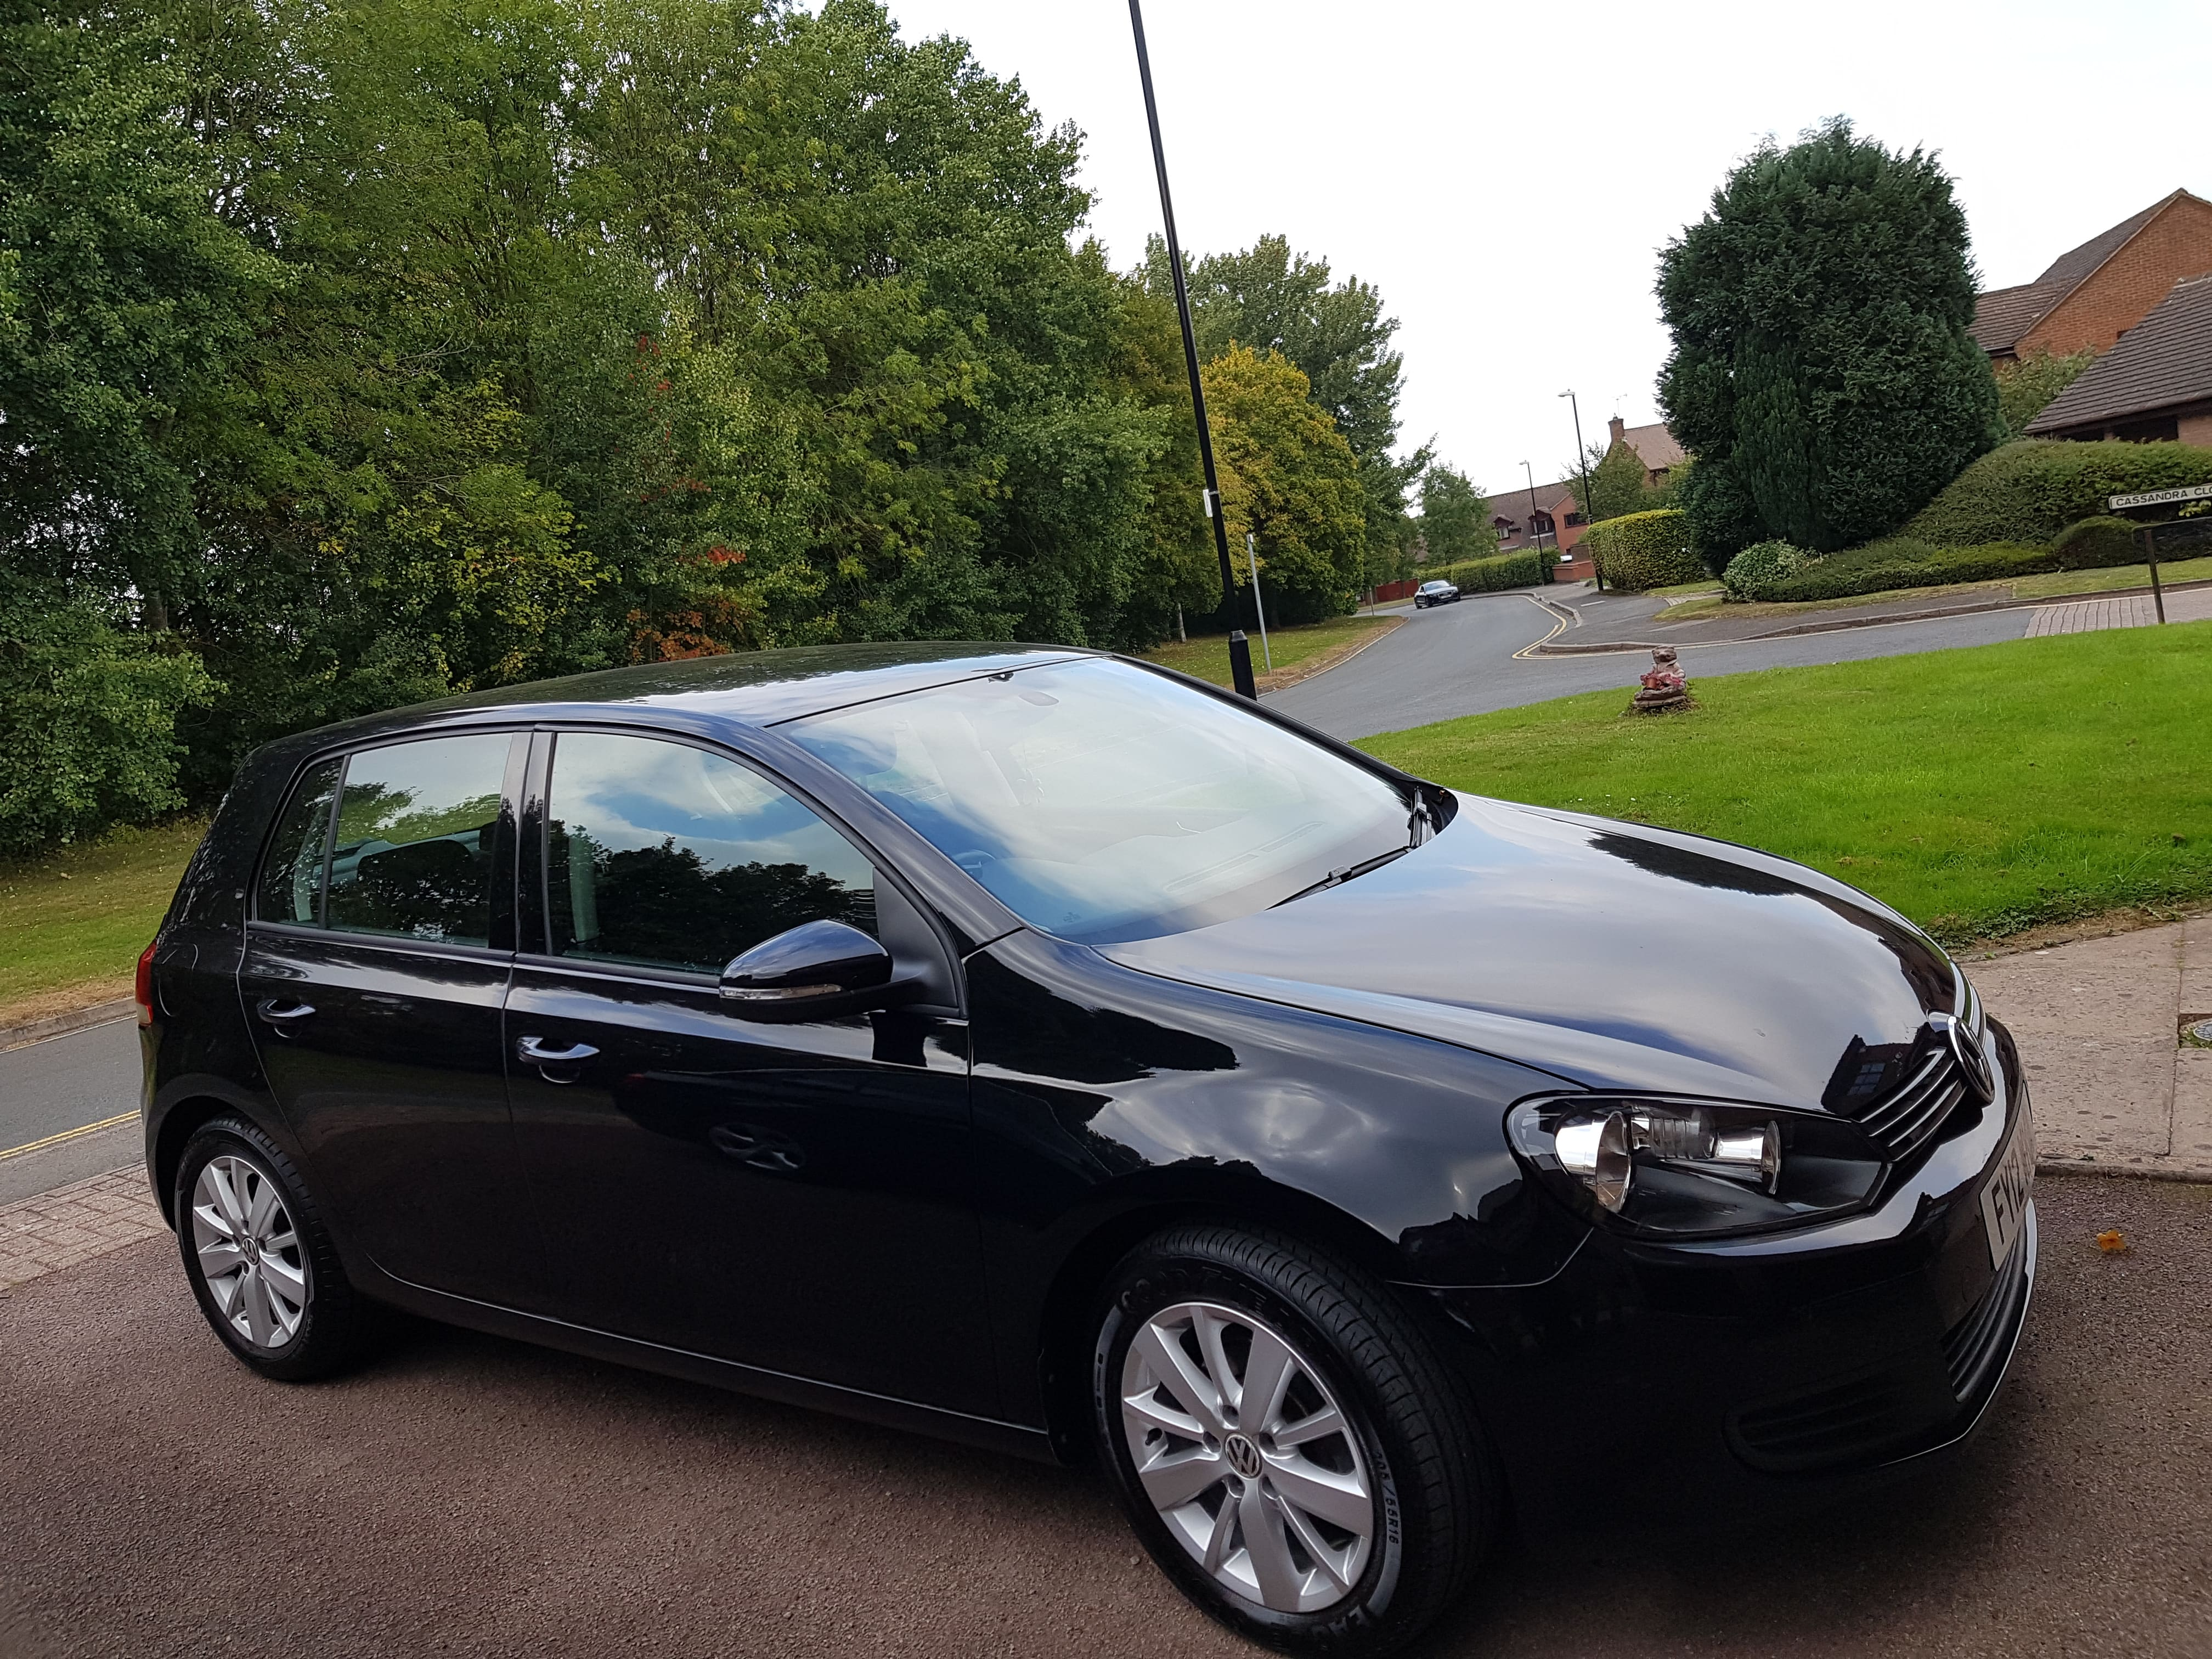 VW Golf 2012 (12) 1.6 TDi 105 BlueMotion Tech Match 5dr DSG Auto Black. Mechatronic warranty until 3 Jan 2020